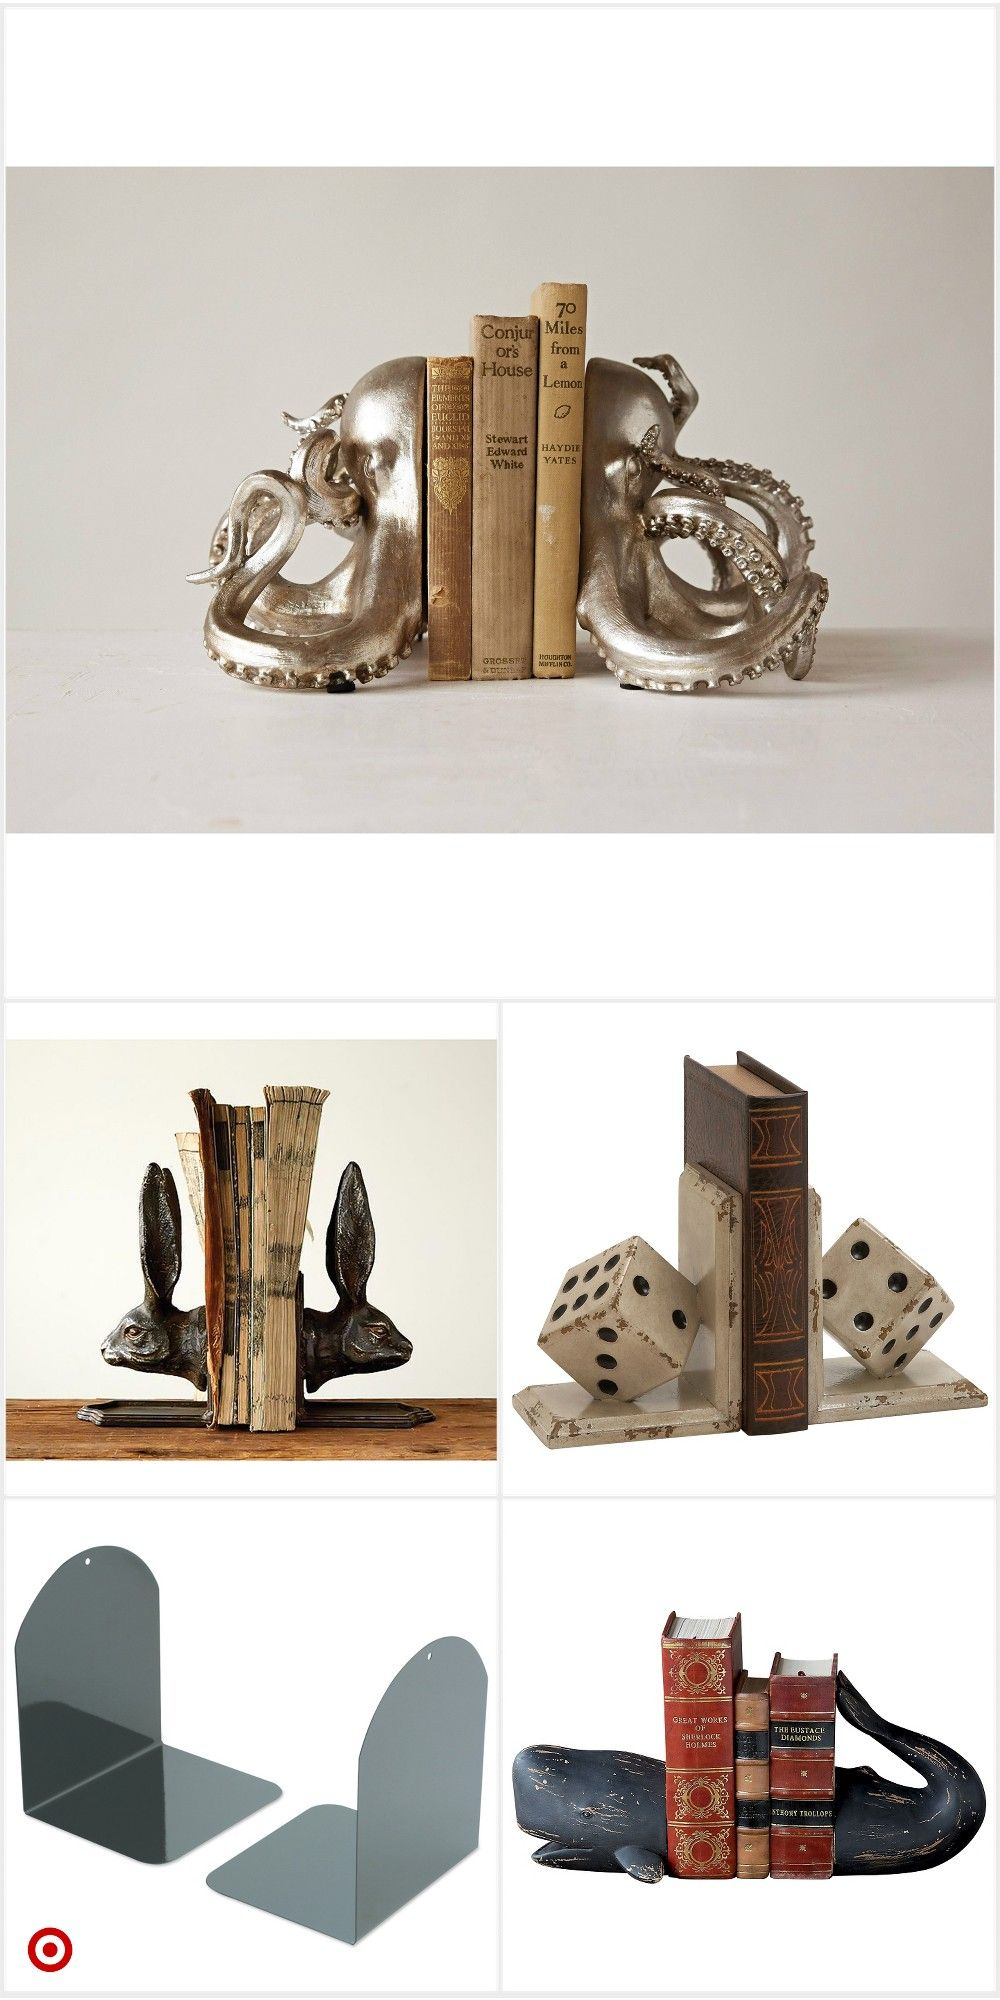 Shop Target For Decorative Bookend You Will Love At Great Low